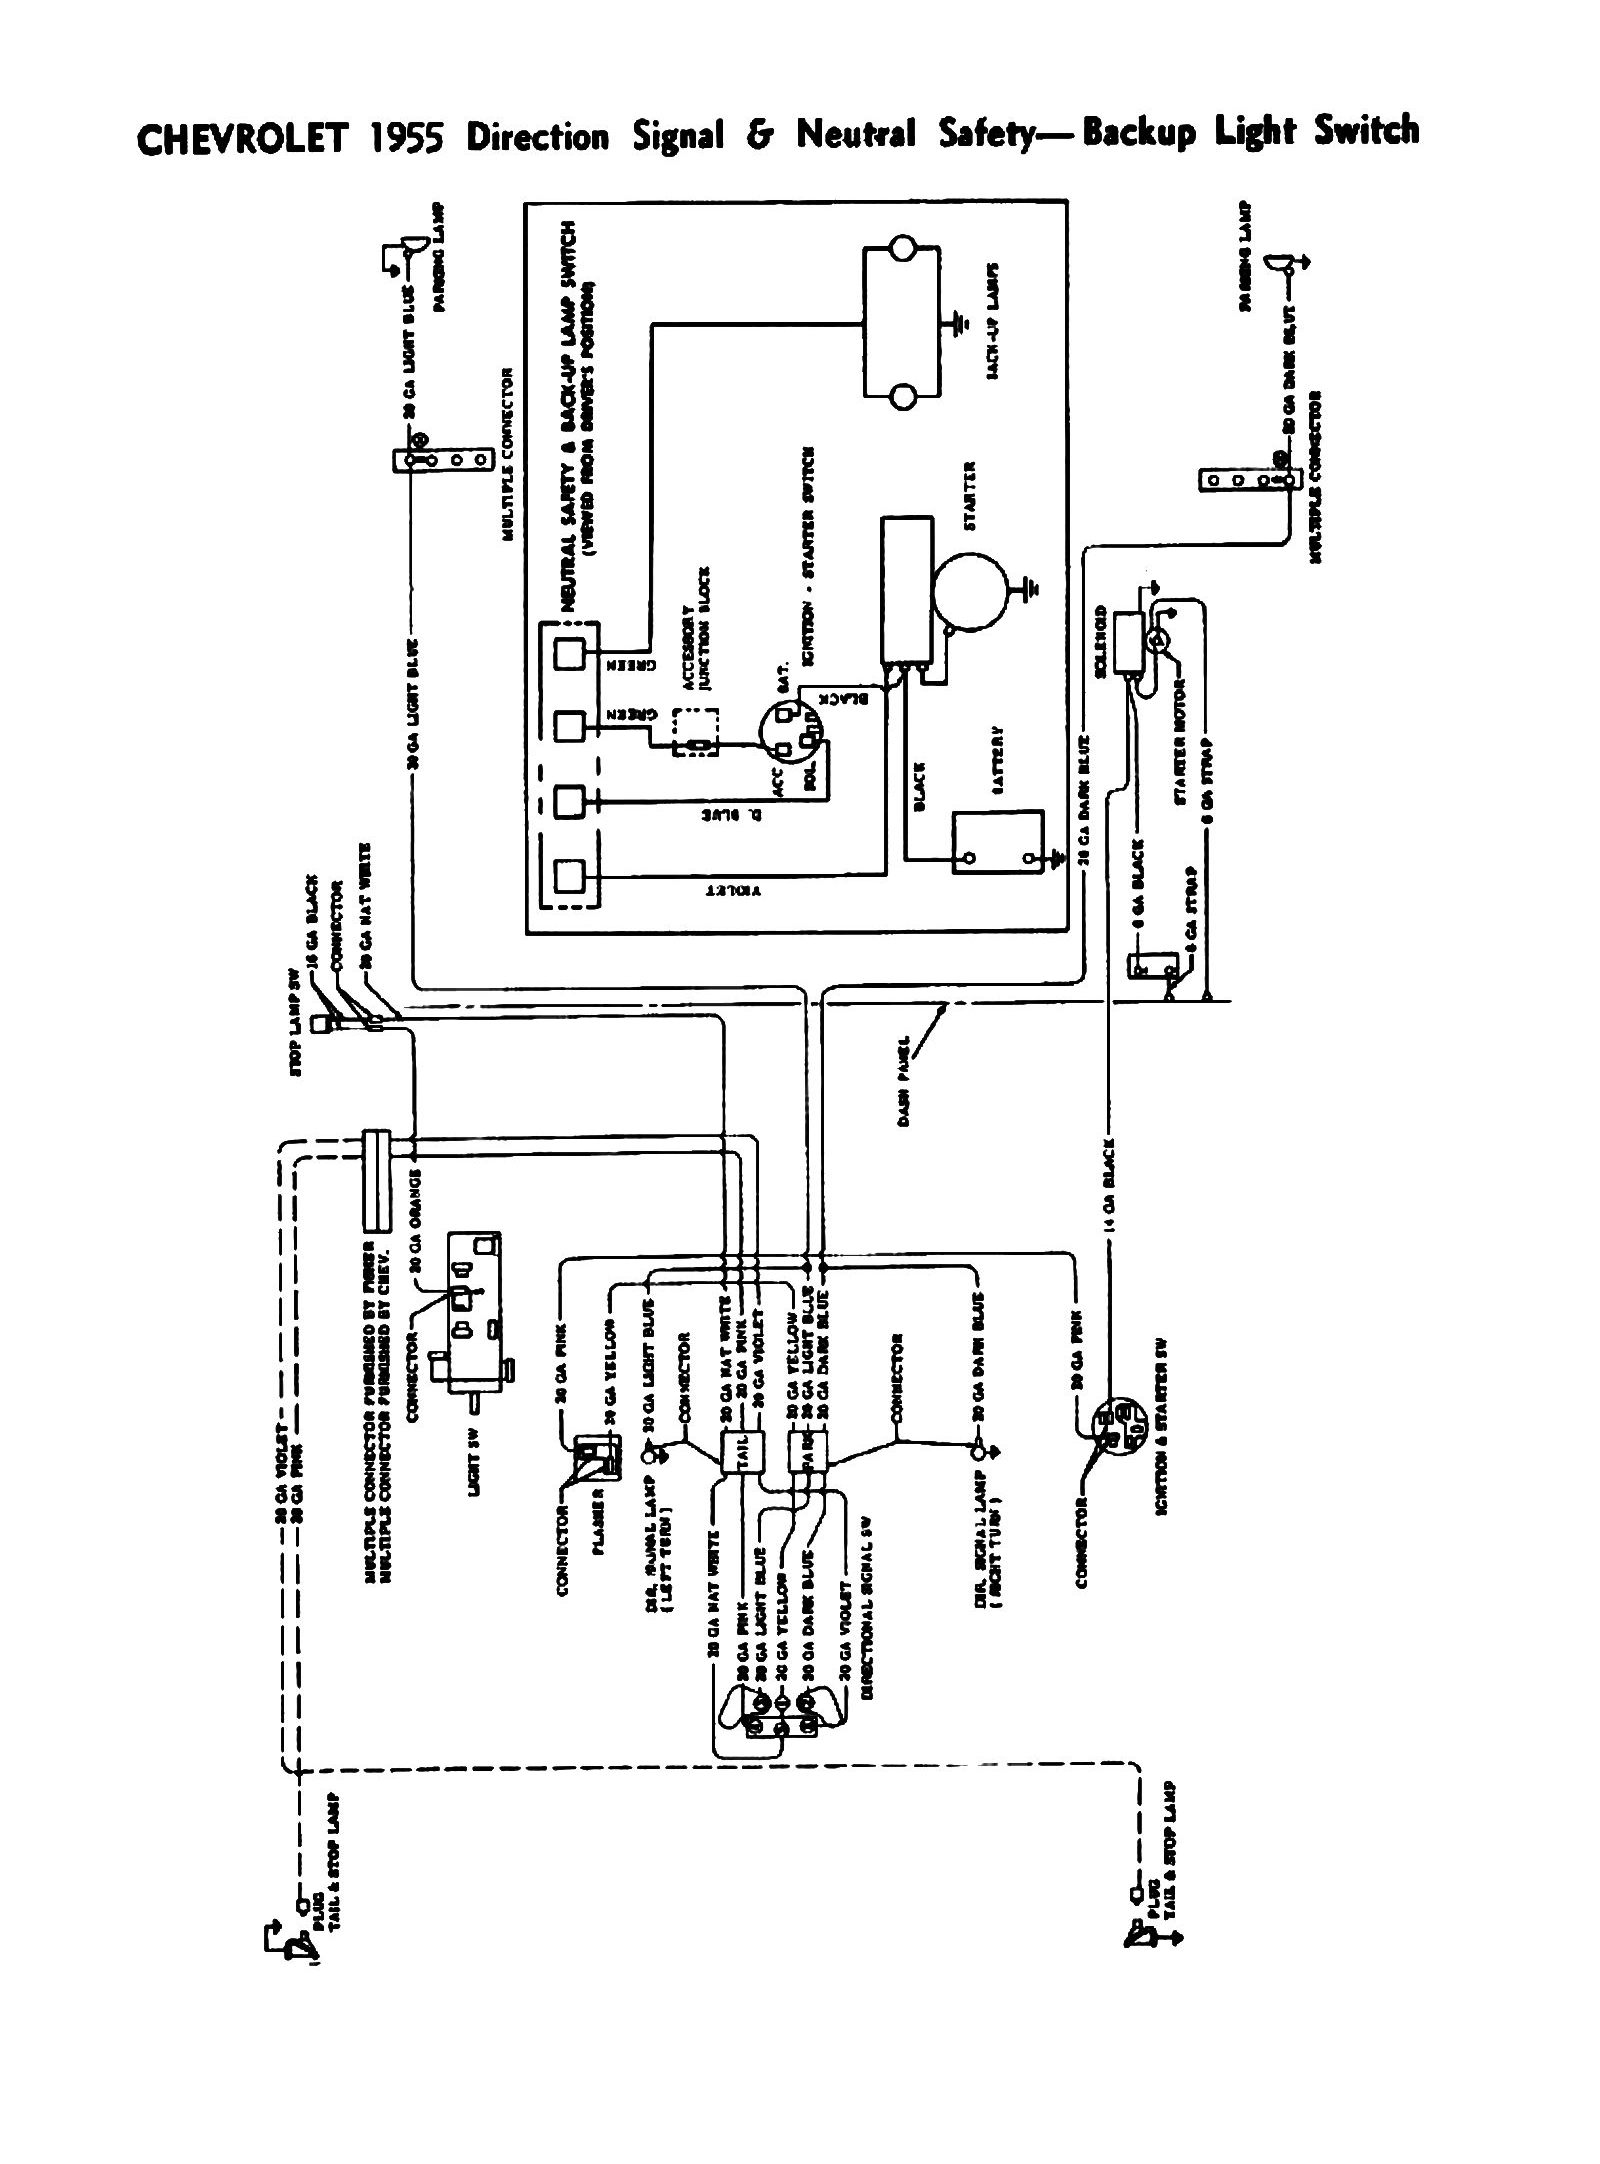 corvette ignition switch wiring diagram data wiring diagram blog rh 2 3 20 schuerer housekeeping de